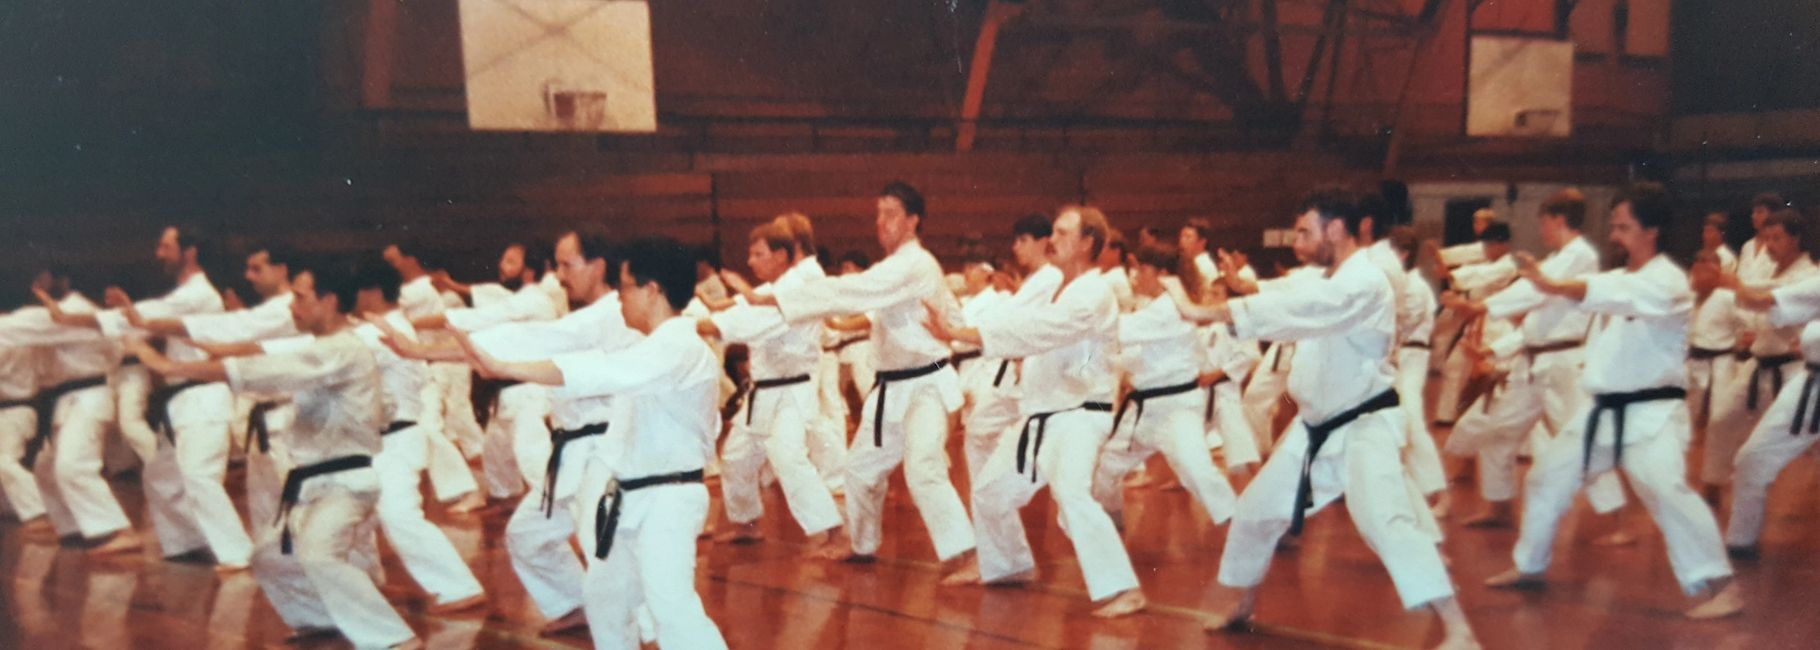 ASKF masters training in the 1980s were too large for normal size classrooms.